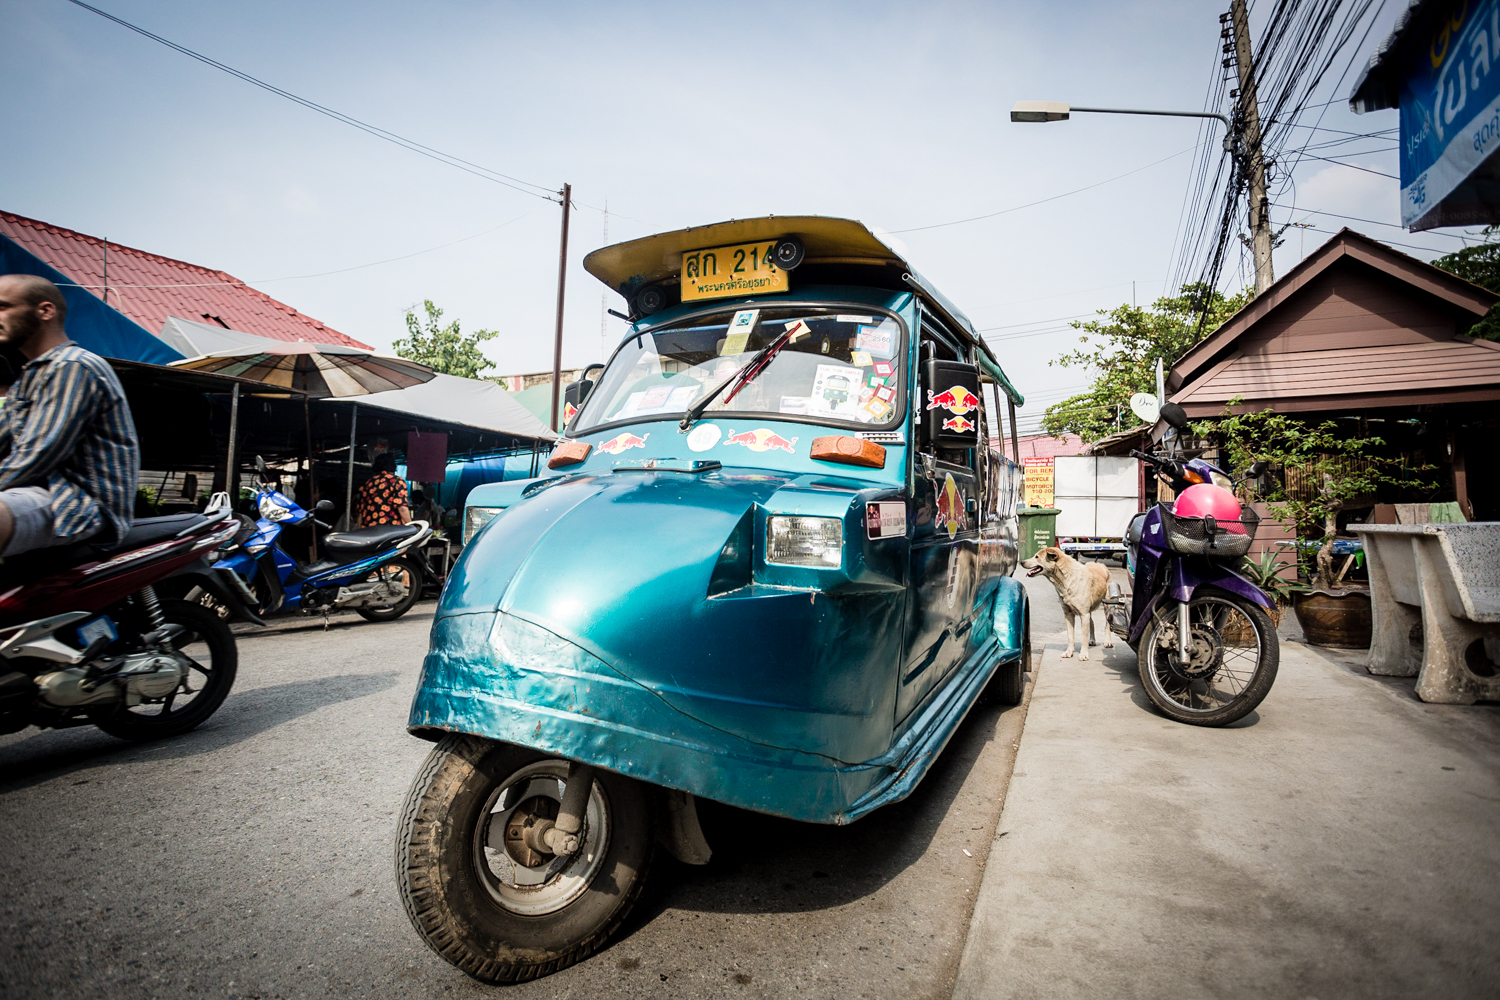 All the tuk-tuks in Ayuthaya have variations of this unique retro look.